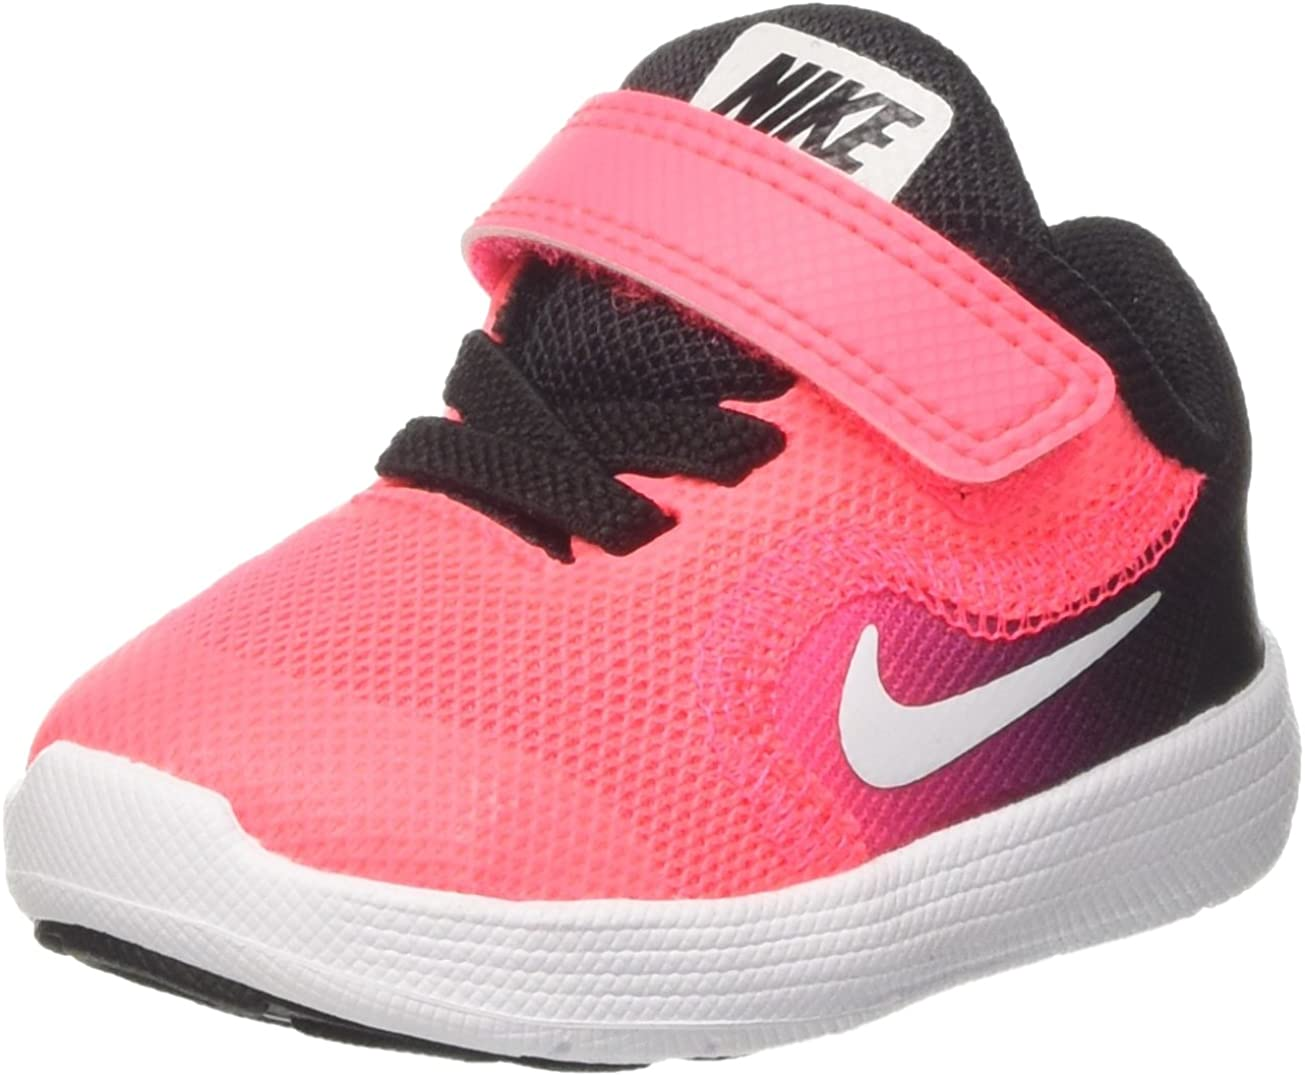 Nike Revolution 3 Gtv, Sneakers para Niñas, Multicolor (Black/White/Racer Pink), 17 EU: Amazon.es: Zapatos y complementos